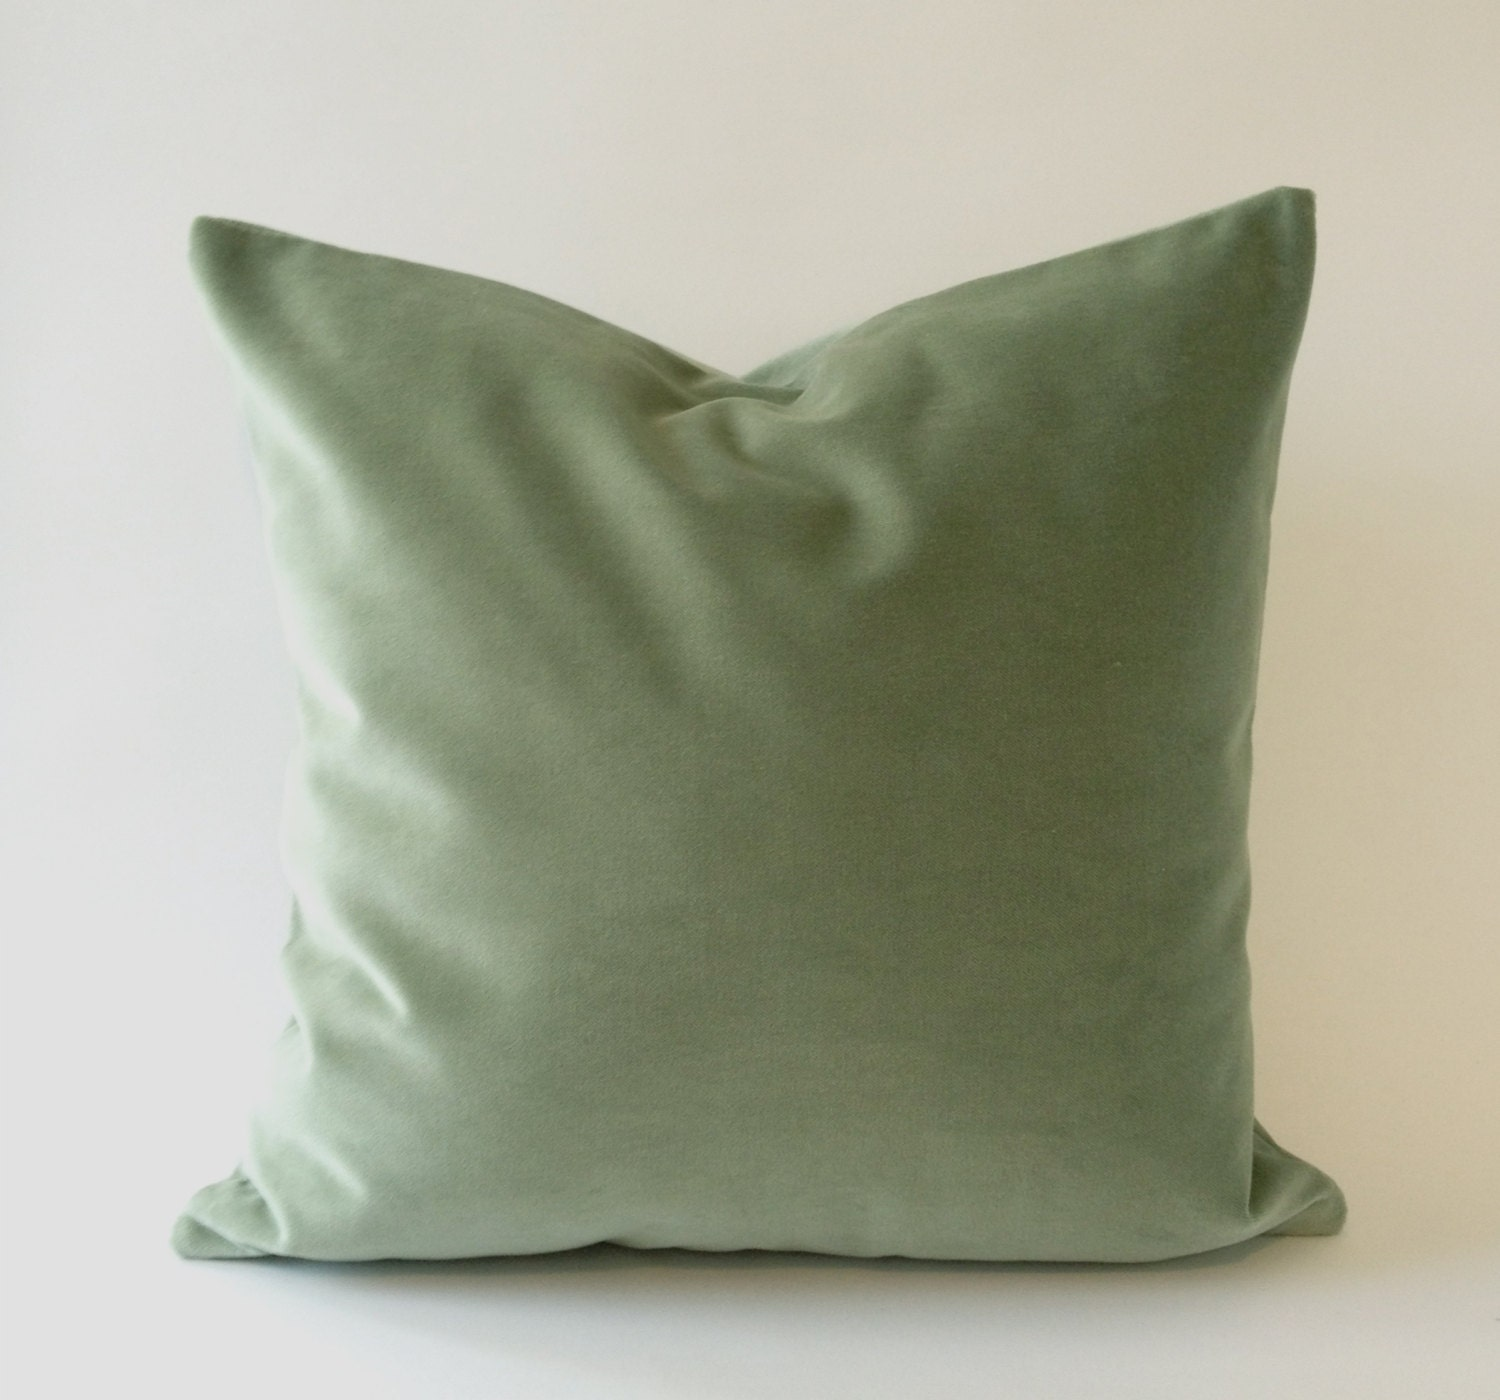 18x18 Seafoam Green Cotton Velvet Pillow Cover Decorative